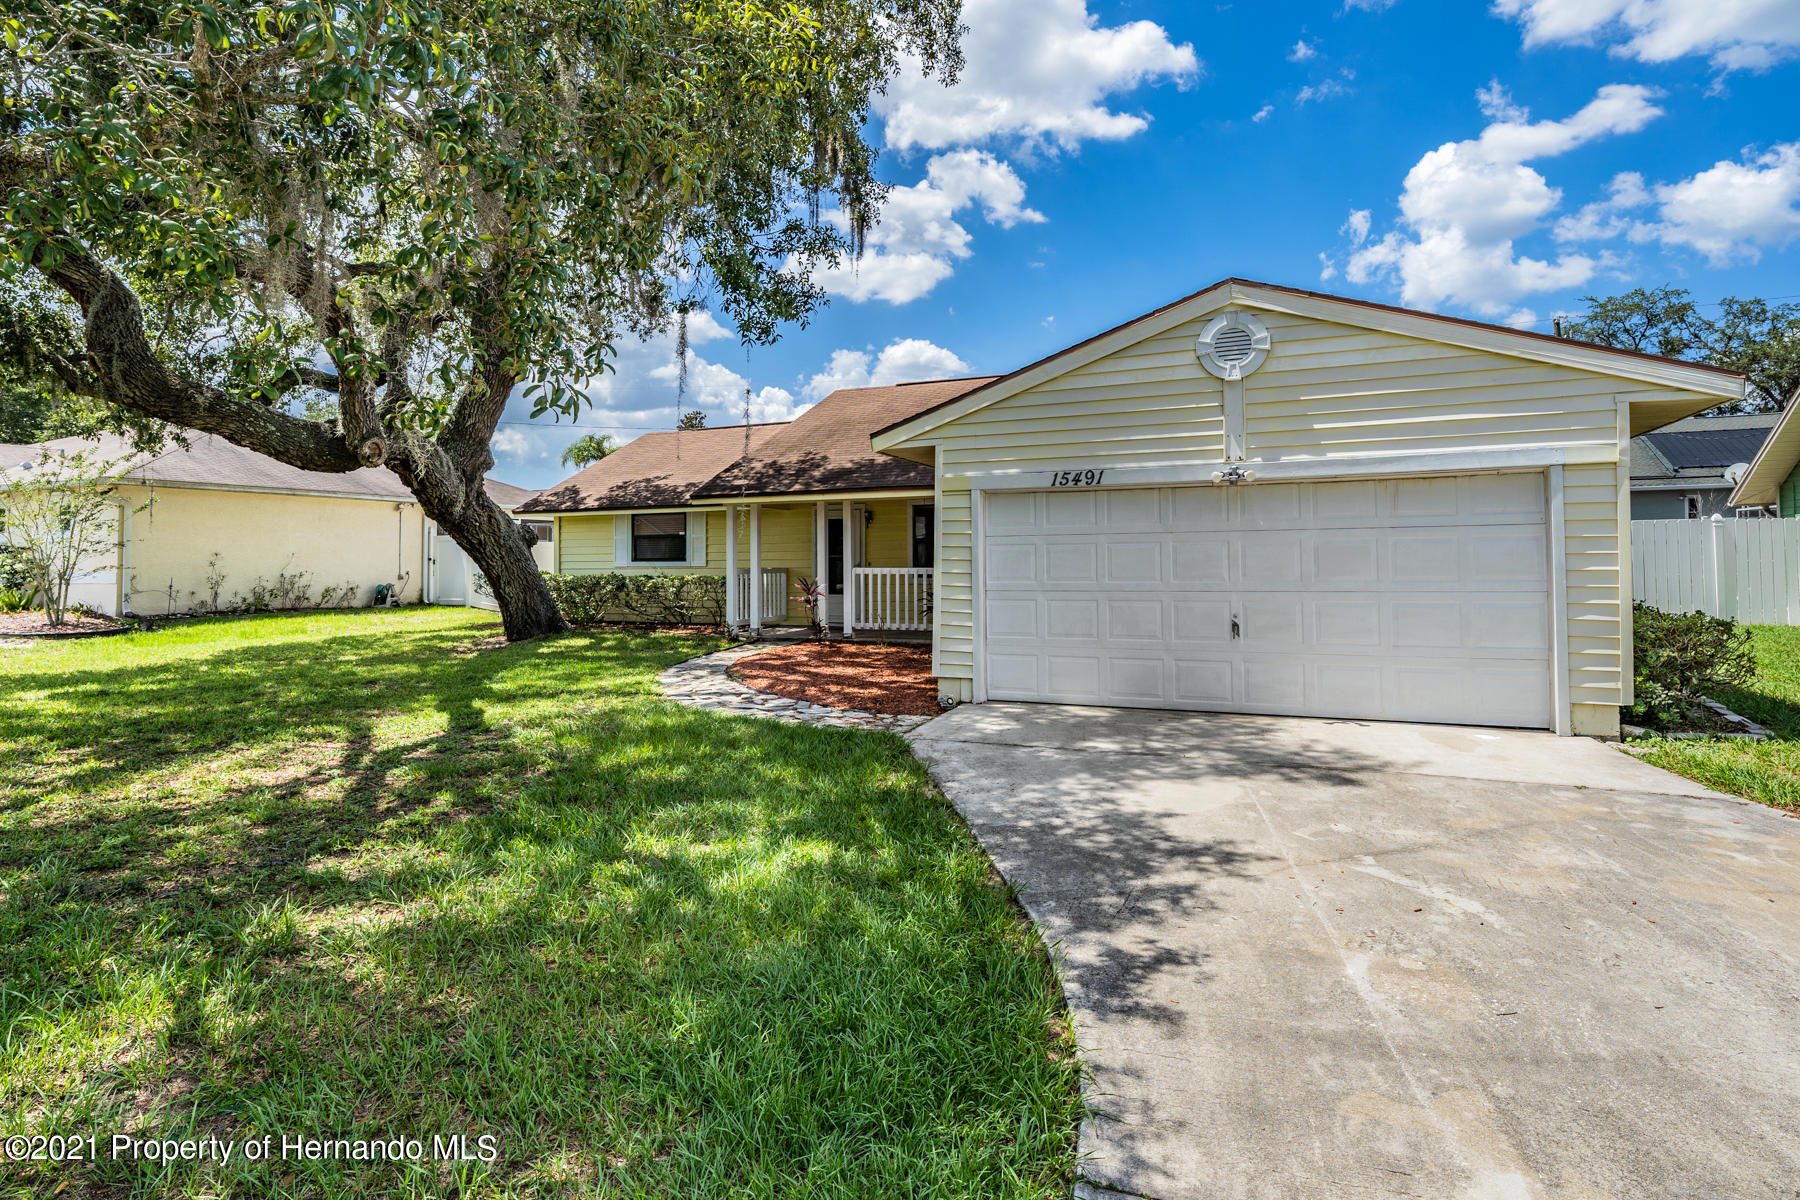 Image 29 For 15491 Arvin Drive